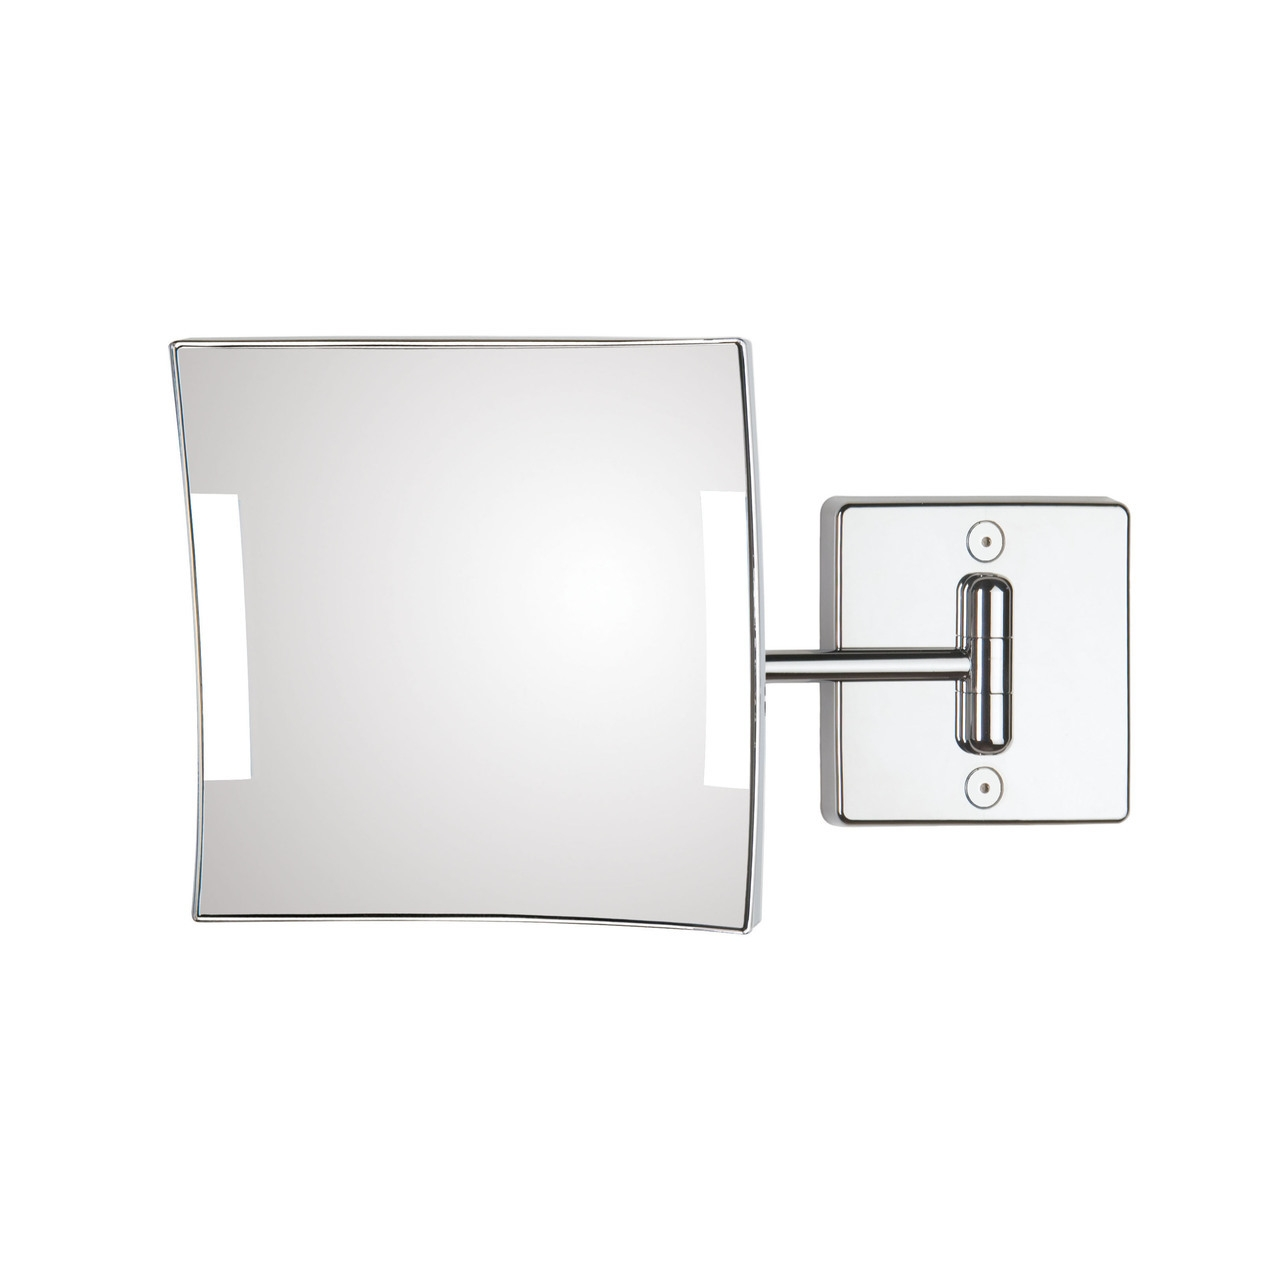 Quadrolo 1-Arm Hard Wired LED Magnifying Mirror 3x